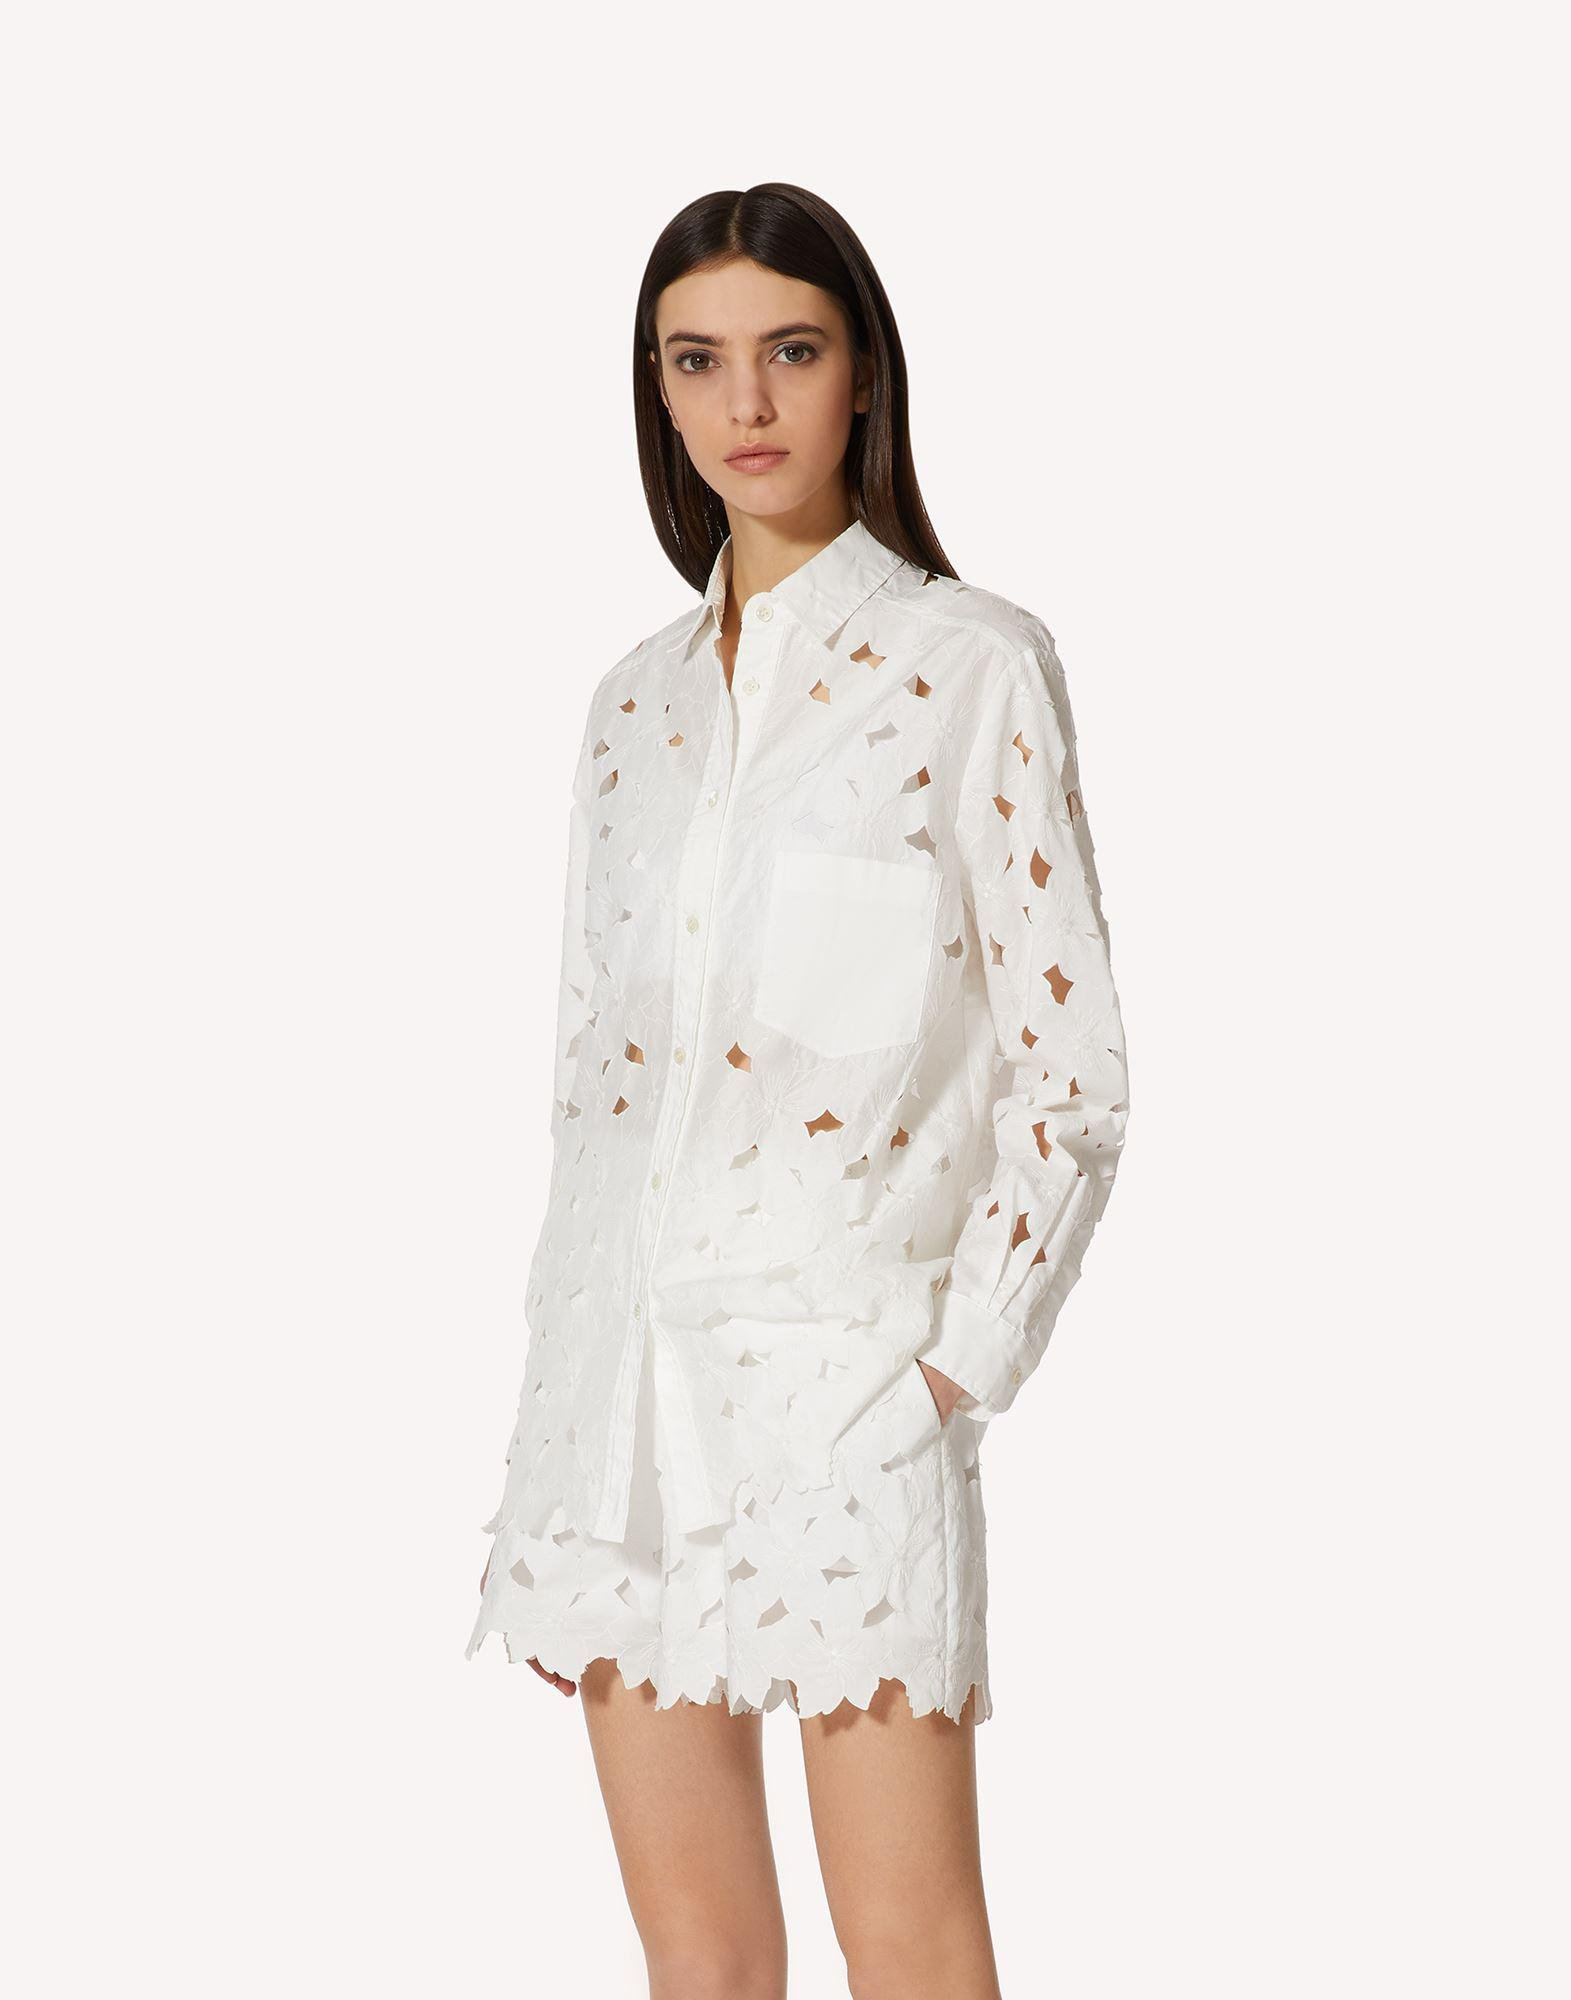 COTTON POPLIN SHIRT WITH CUT-OUT EMBROIDERY 2